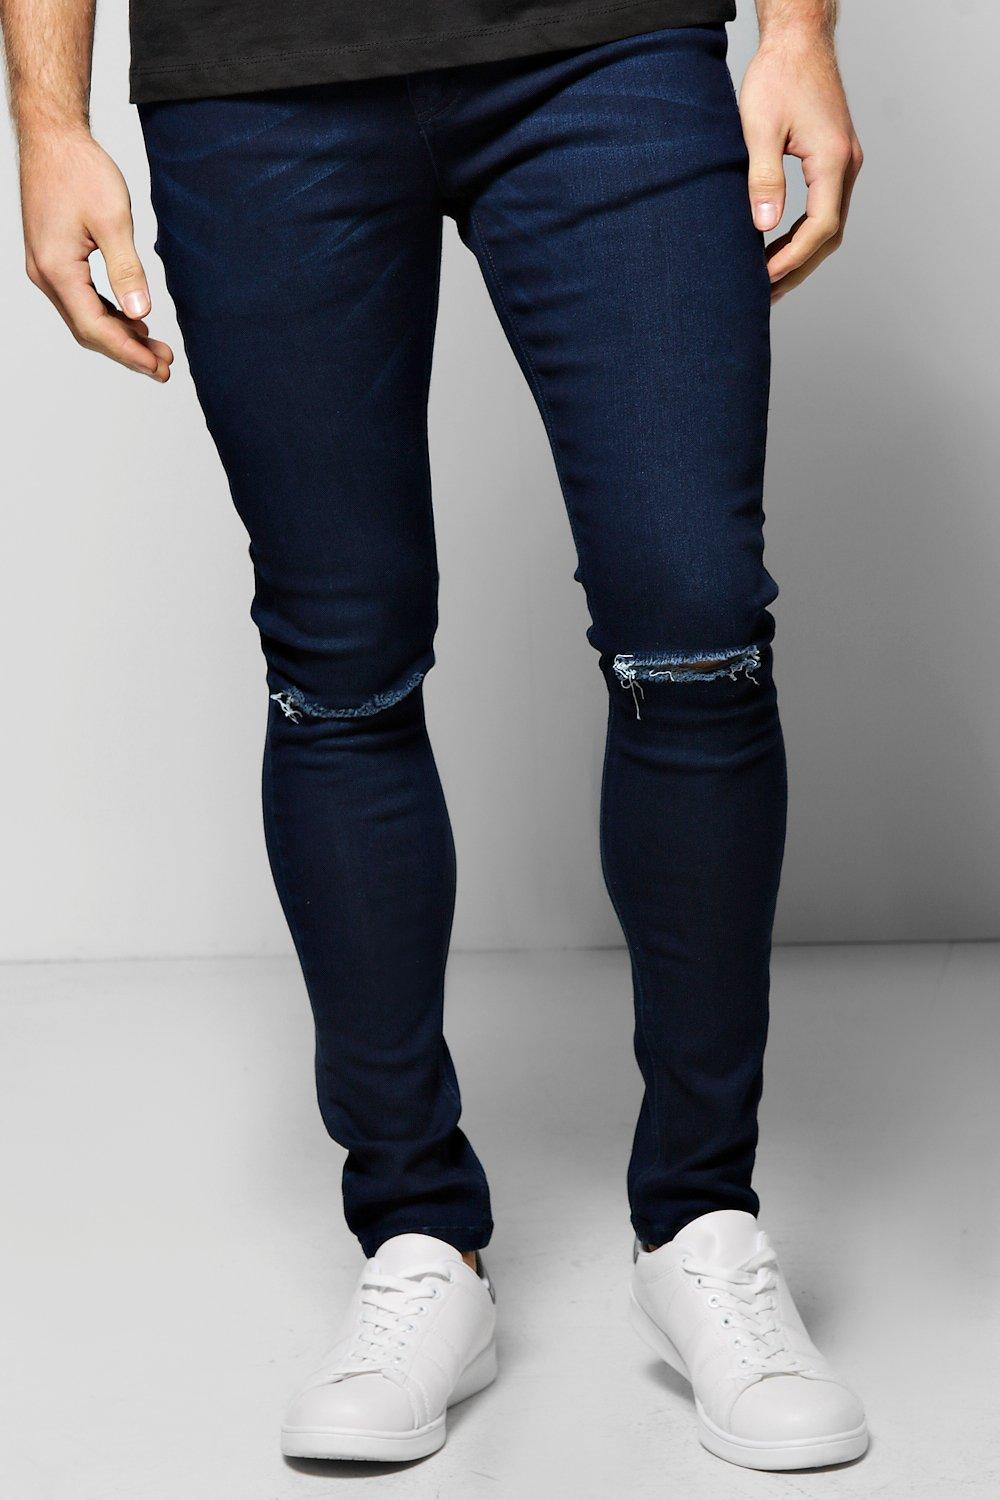 Super Skinny Stretch Jeans with Ripped Knees